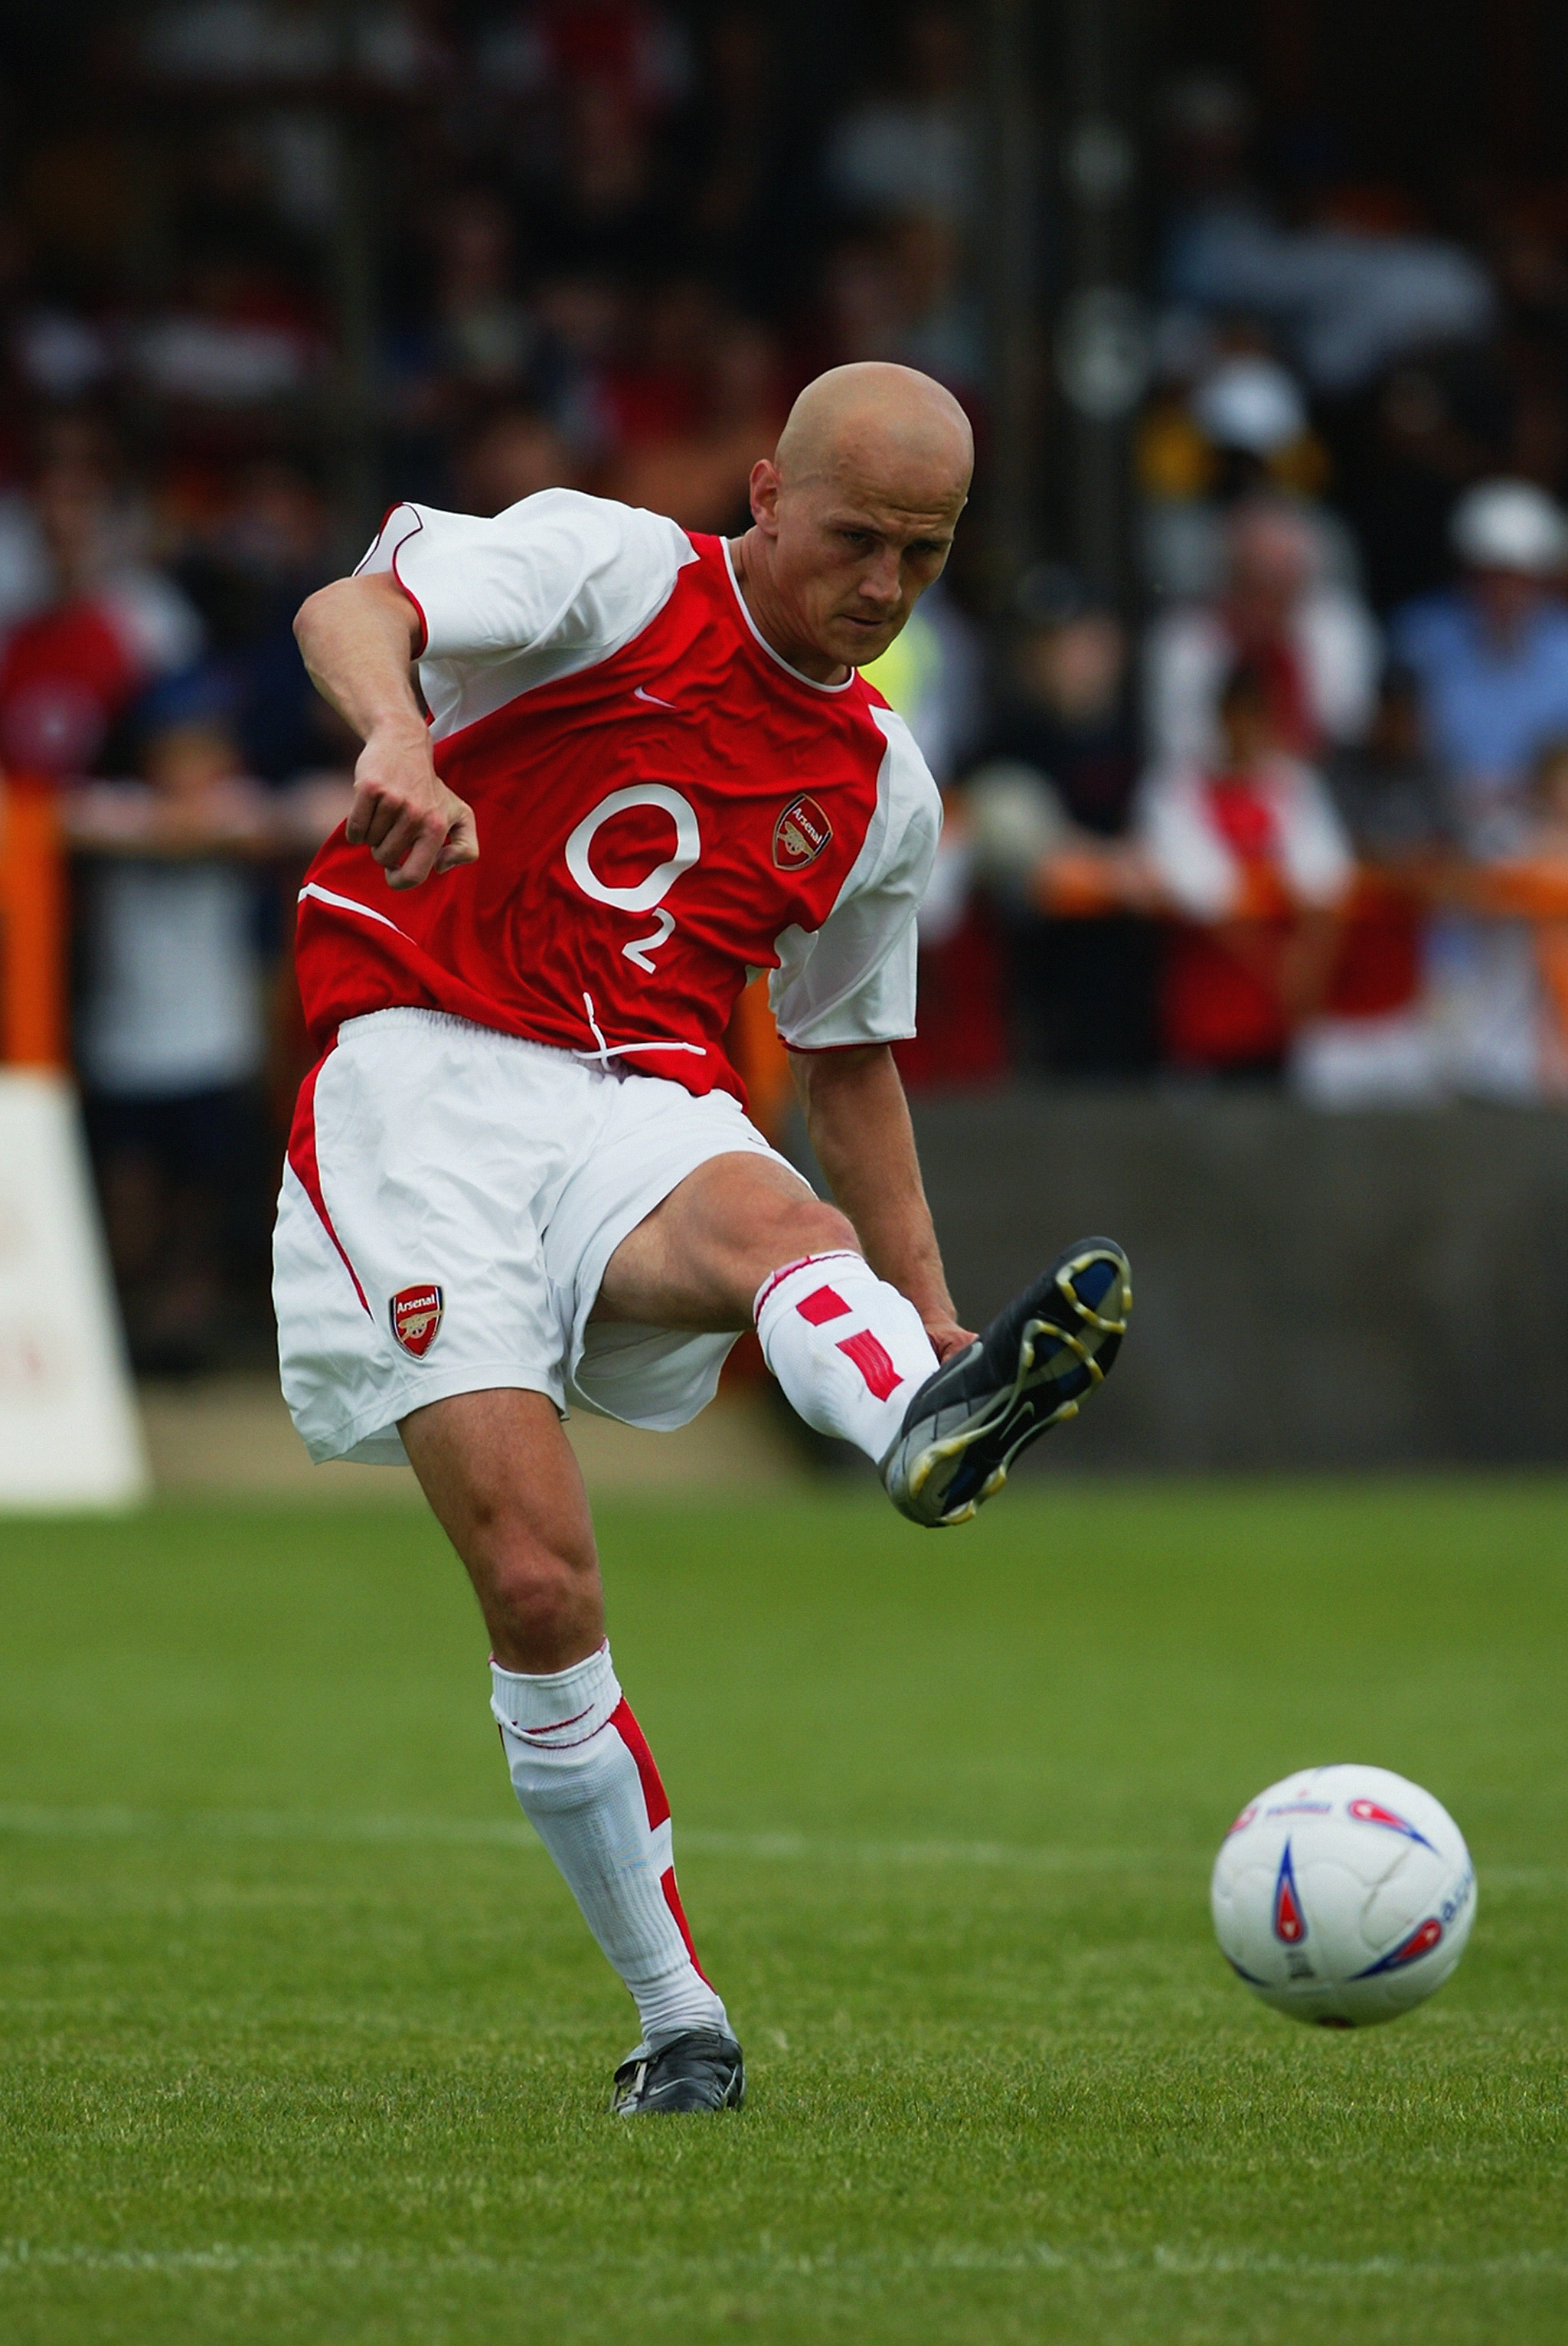 LONDON - JULY 19:  Pascal Cygan of Arsenal passes the ball during the Pre-Season Friendly match between Barnet and Arsenal held on July 19, 2003 at the Underhill Stadium, in Barnet, London. The match ended in a 0-0 draw. (Photo by Phil Cole/Getty Images)